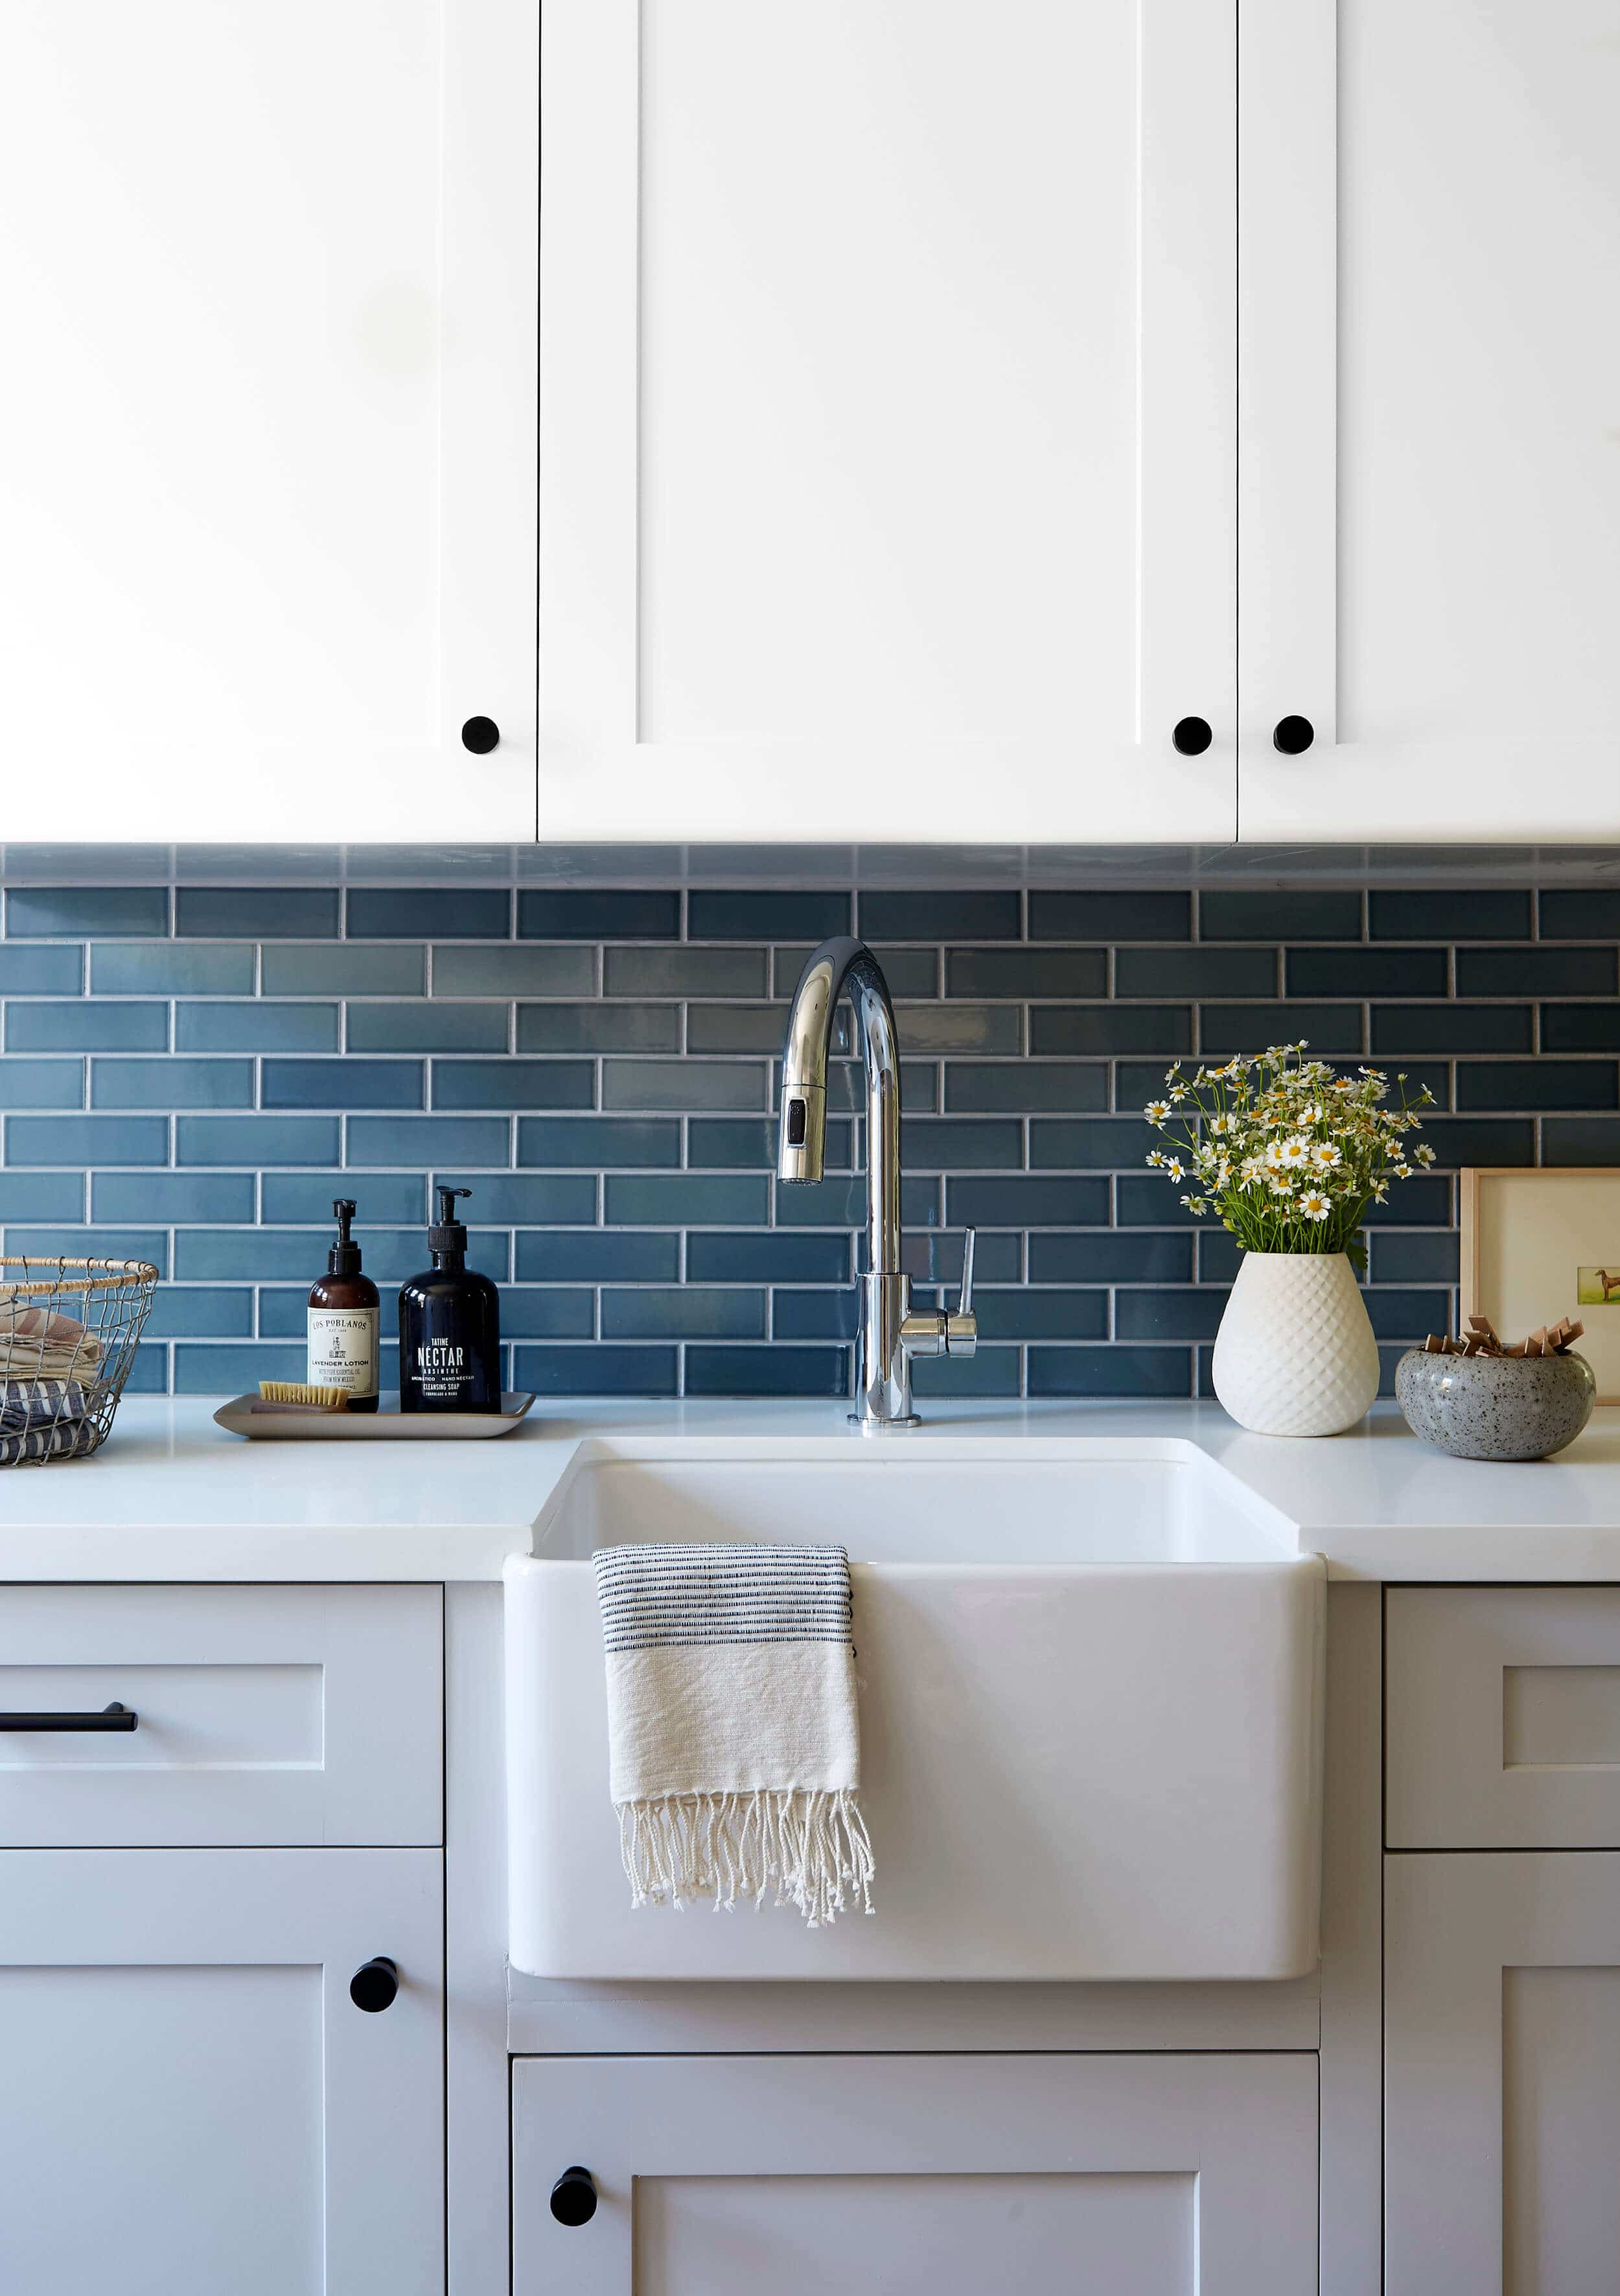 36 Affordable Faucets For An Easy Kitchen And Bath Update - Bobby Berk